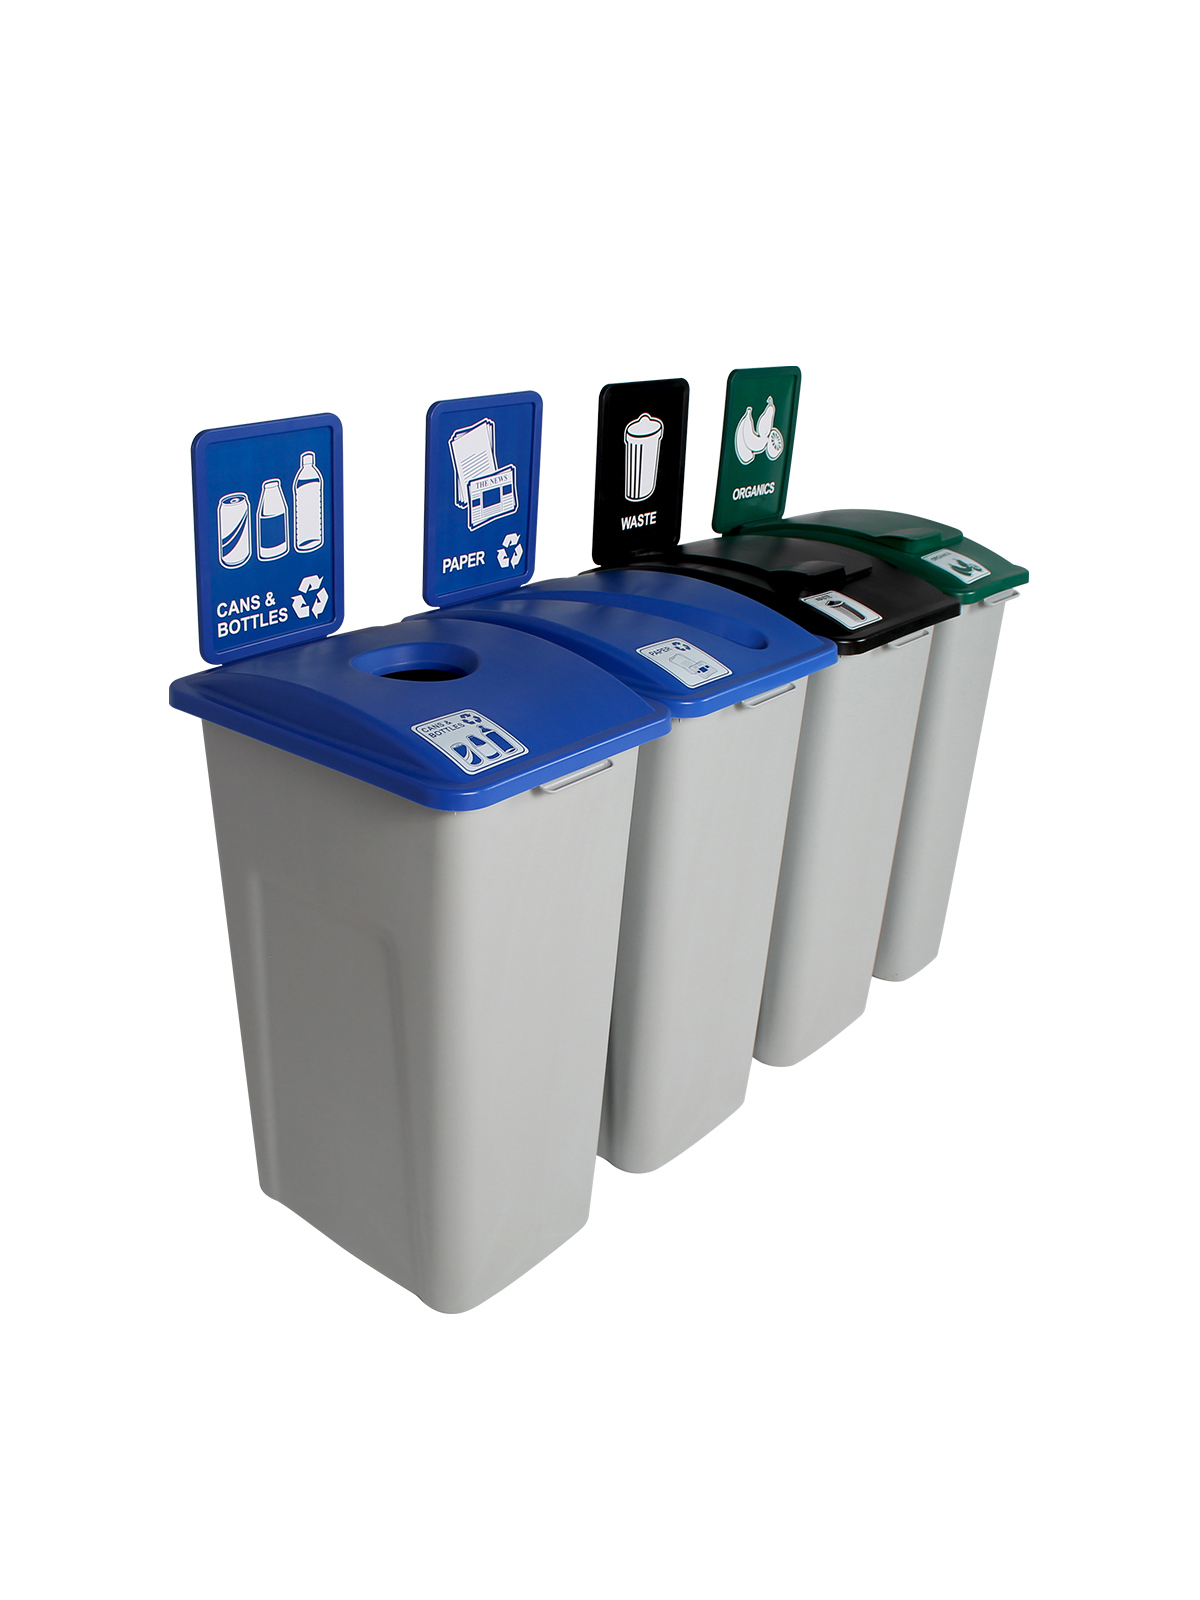 WASTE WATCHER XL - Quad - Cans & Bottles-Paper-Organics-Waste - Circle-Slot-Solid Lift-Solid Lift - Grey-Blue-Blue-Green-Black